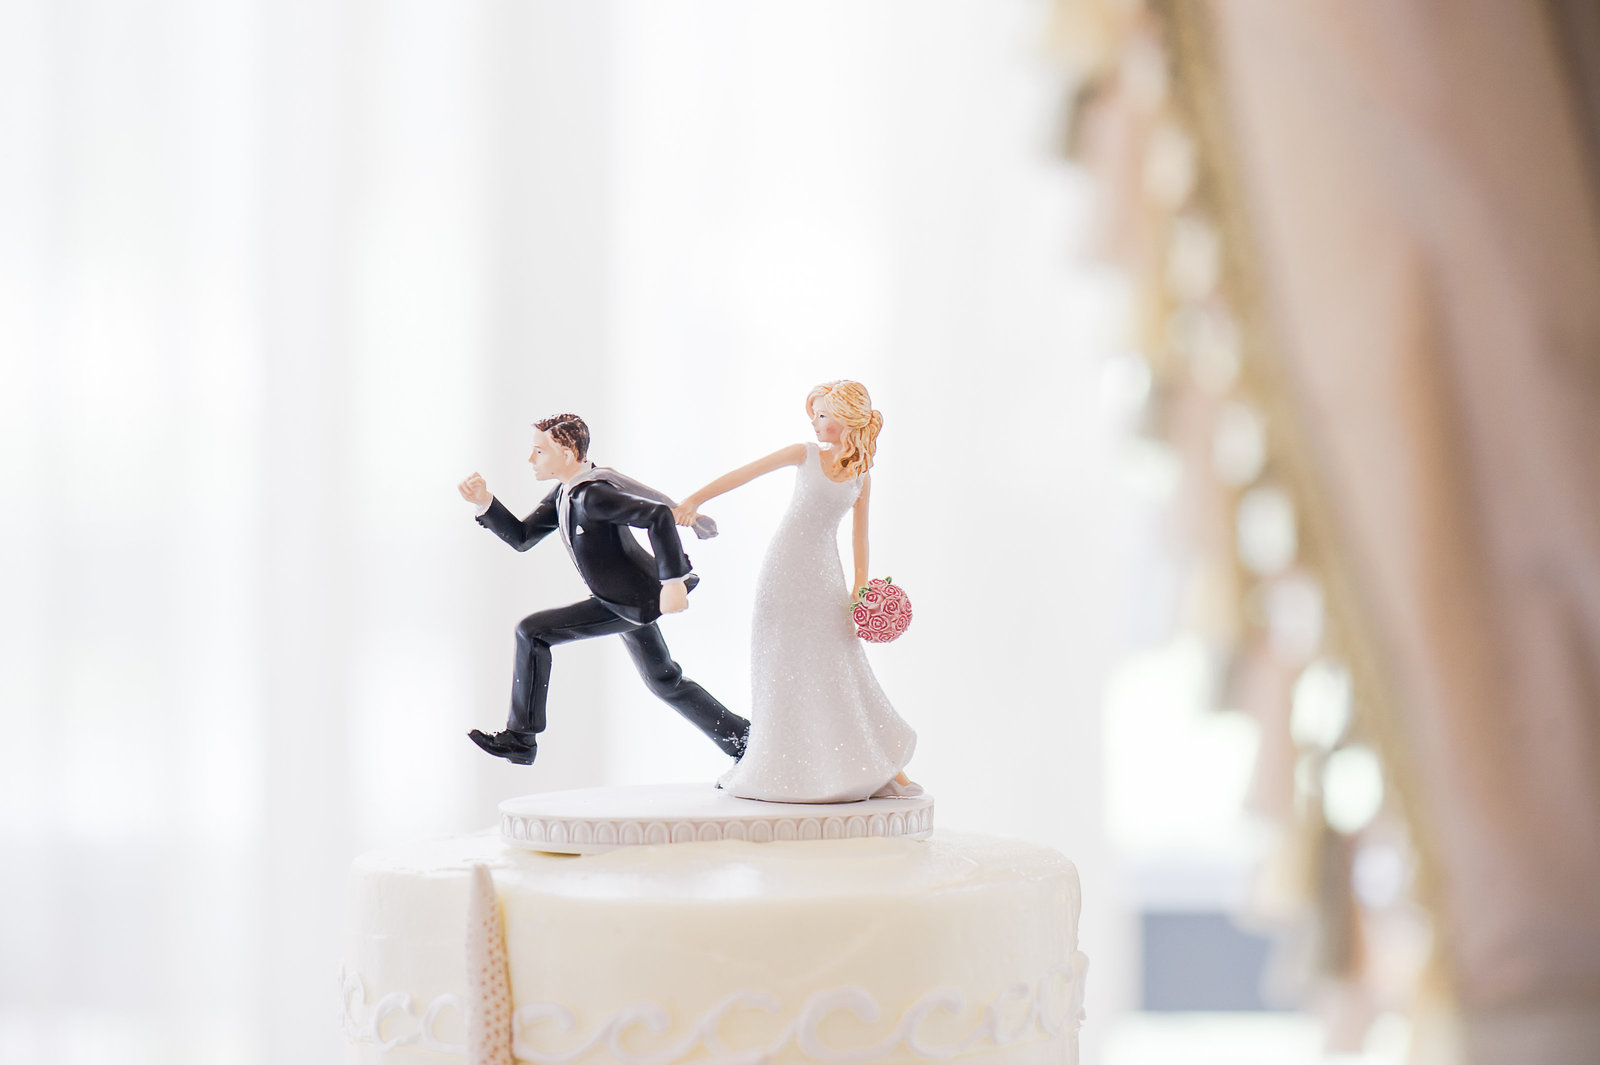 Running Cake Topper - Myacoo Country Club Wedding - Palm Beach Wedding Photography by Palm Beach Photography, Inc.